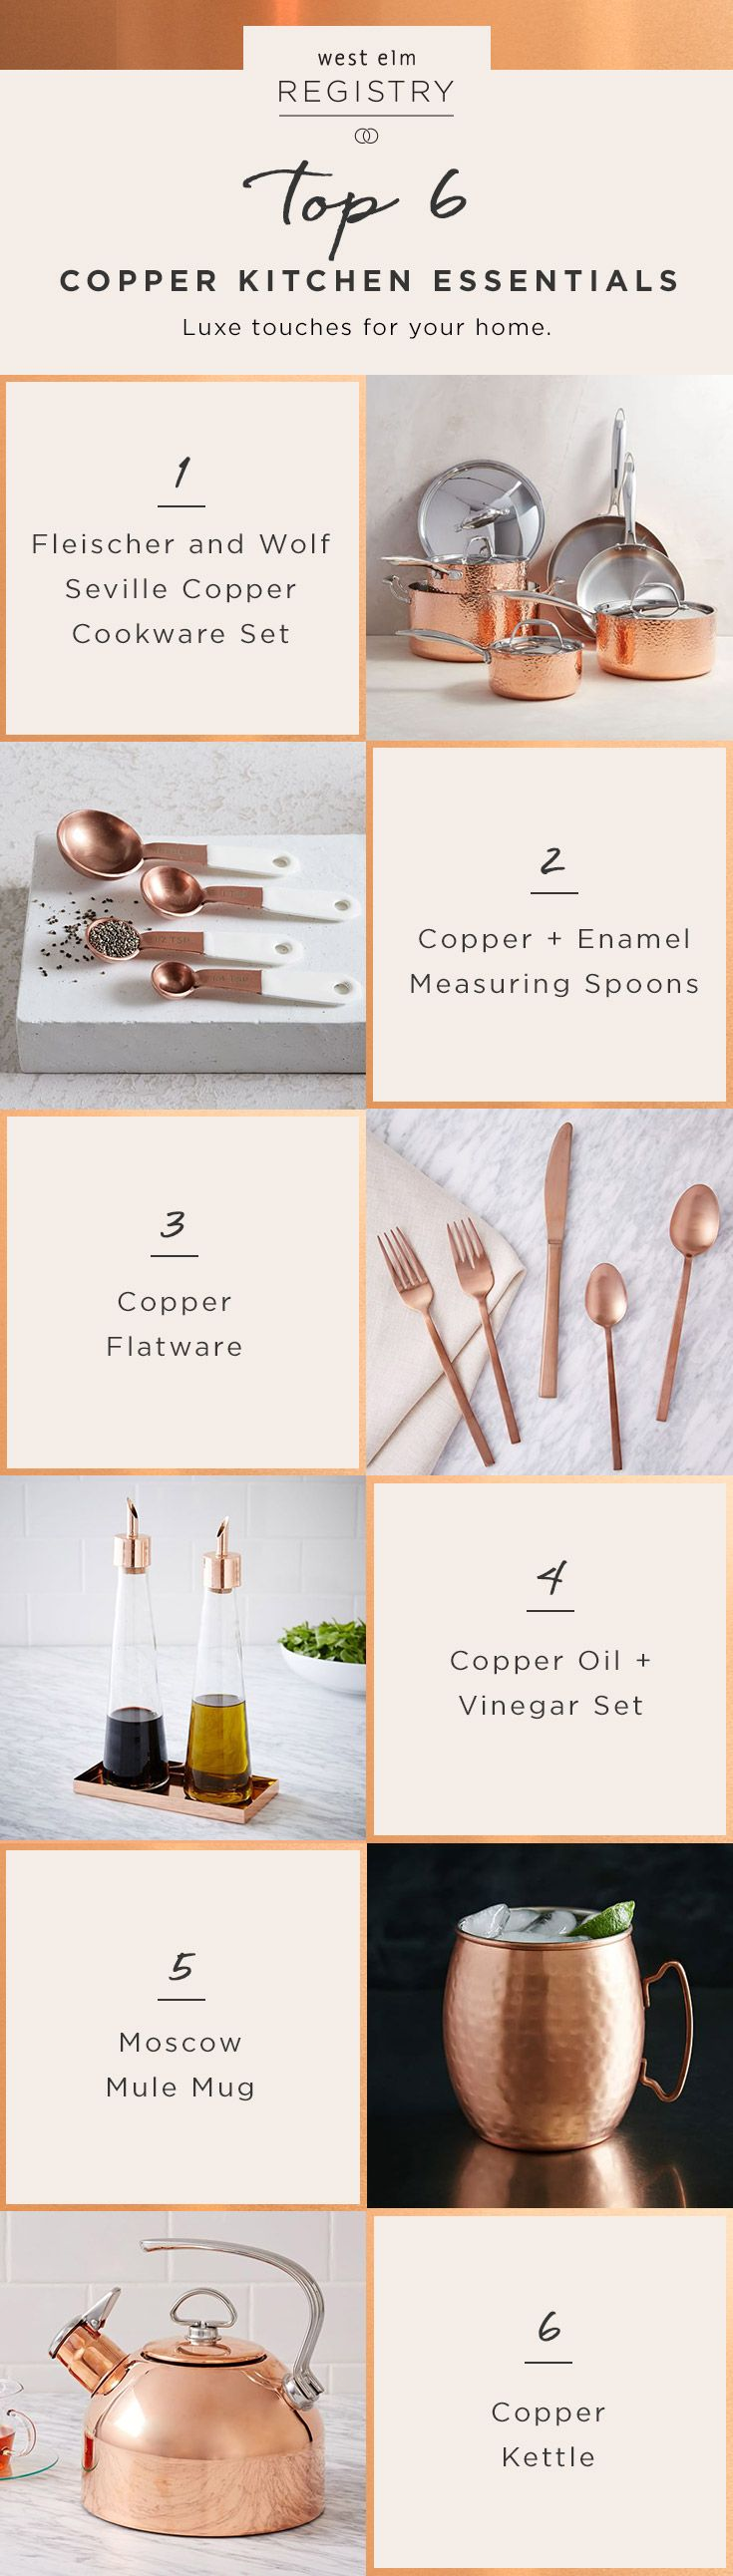 Tying The Knot These Copper Kitchen Essentials Are Wedding Registry Must Haves Head Over To Westelm Com To Get Your R Copper Kitchen Decor Kitchen Essentials